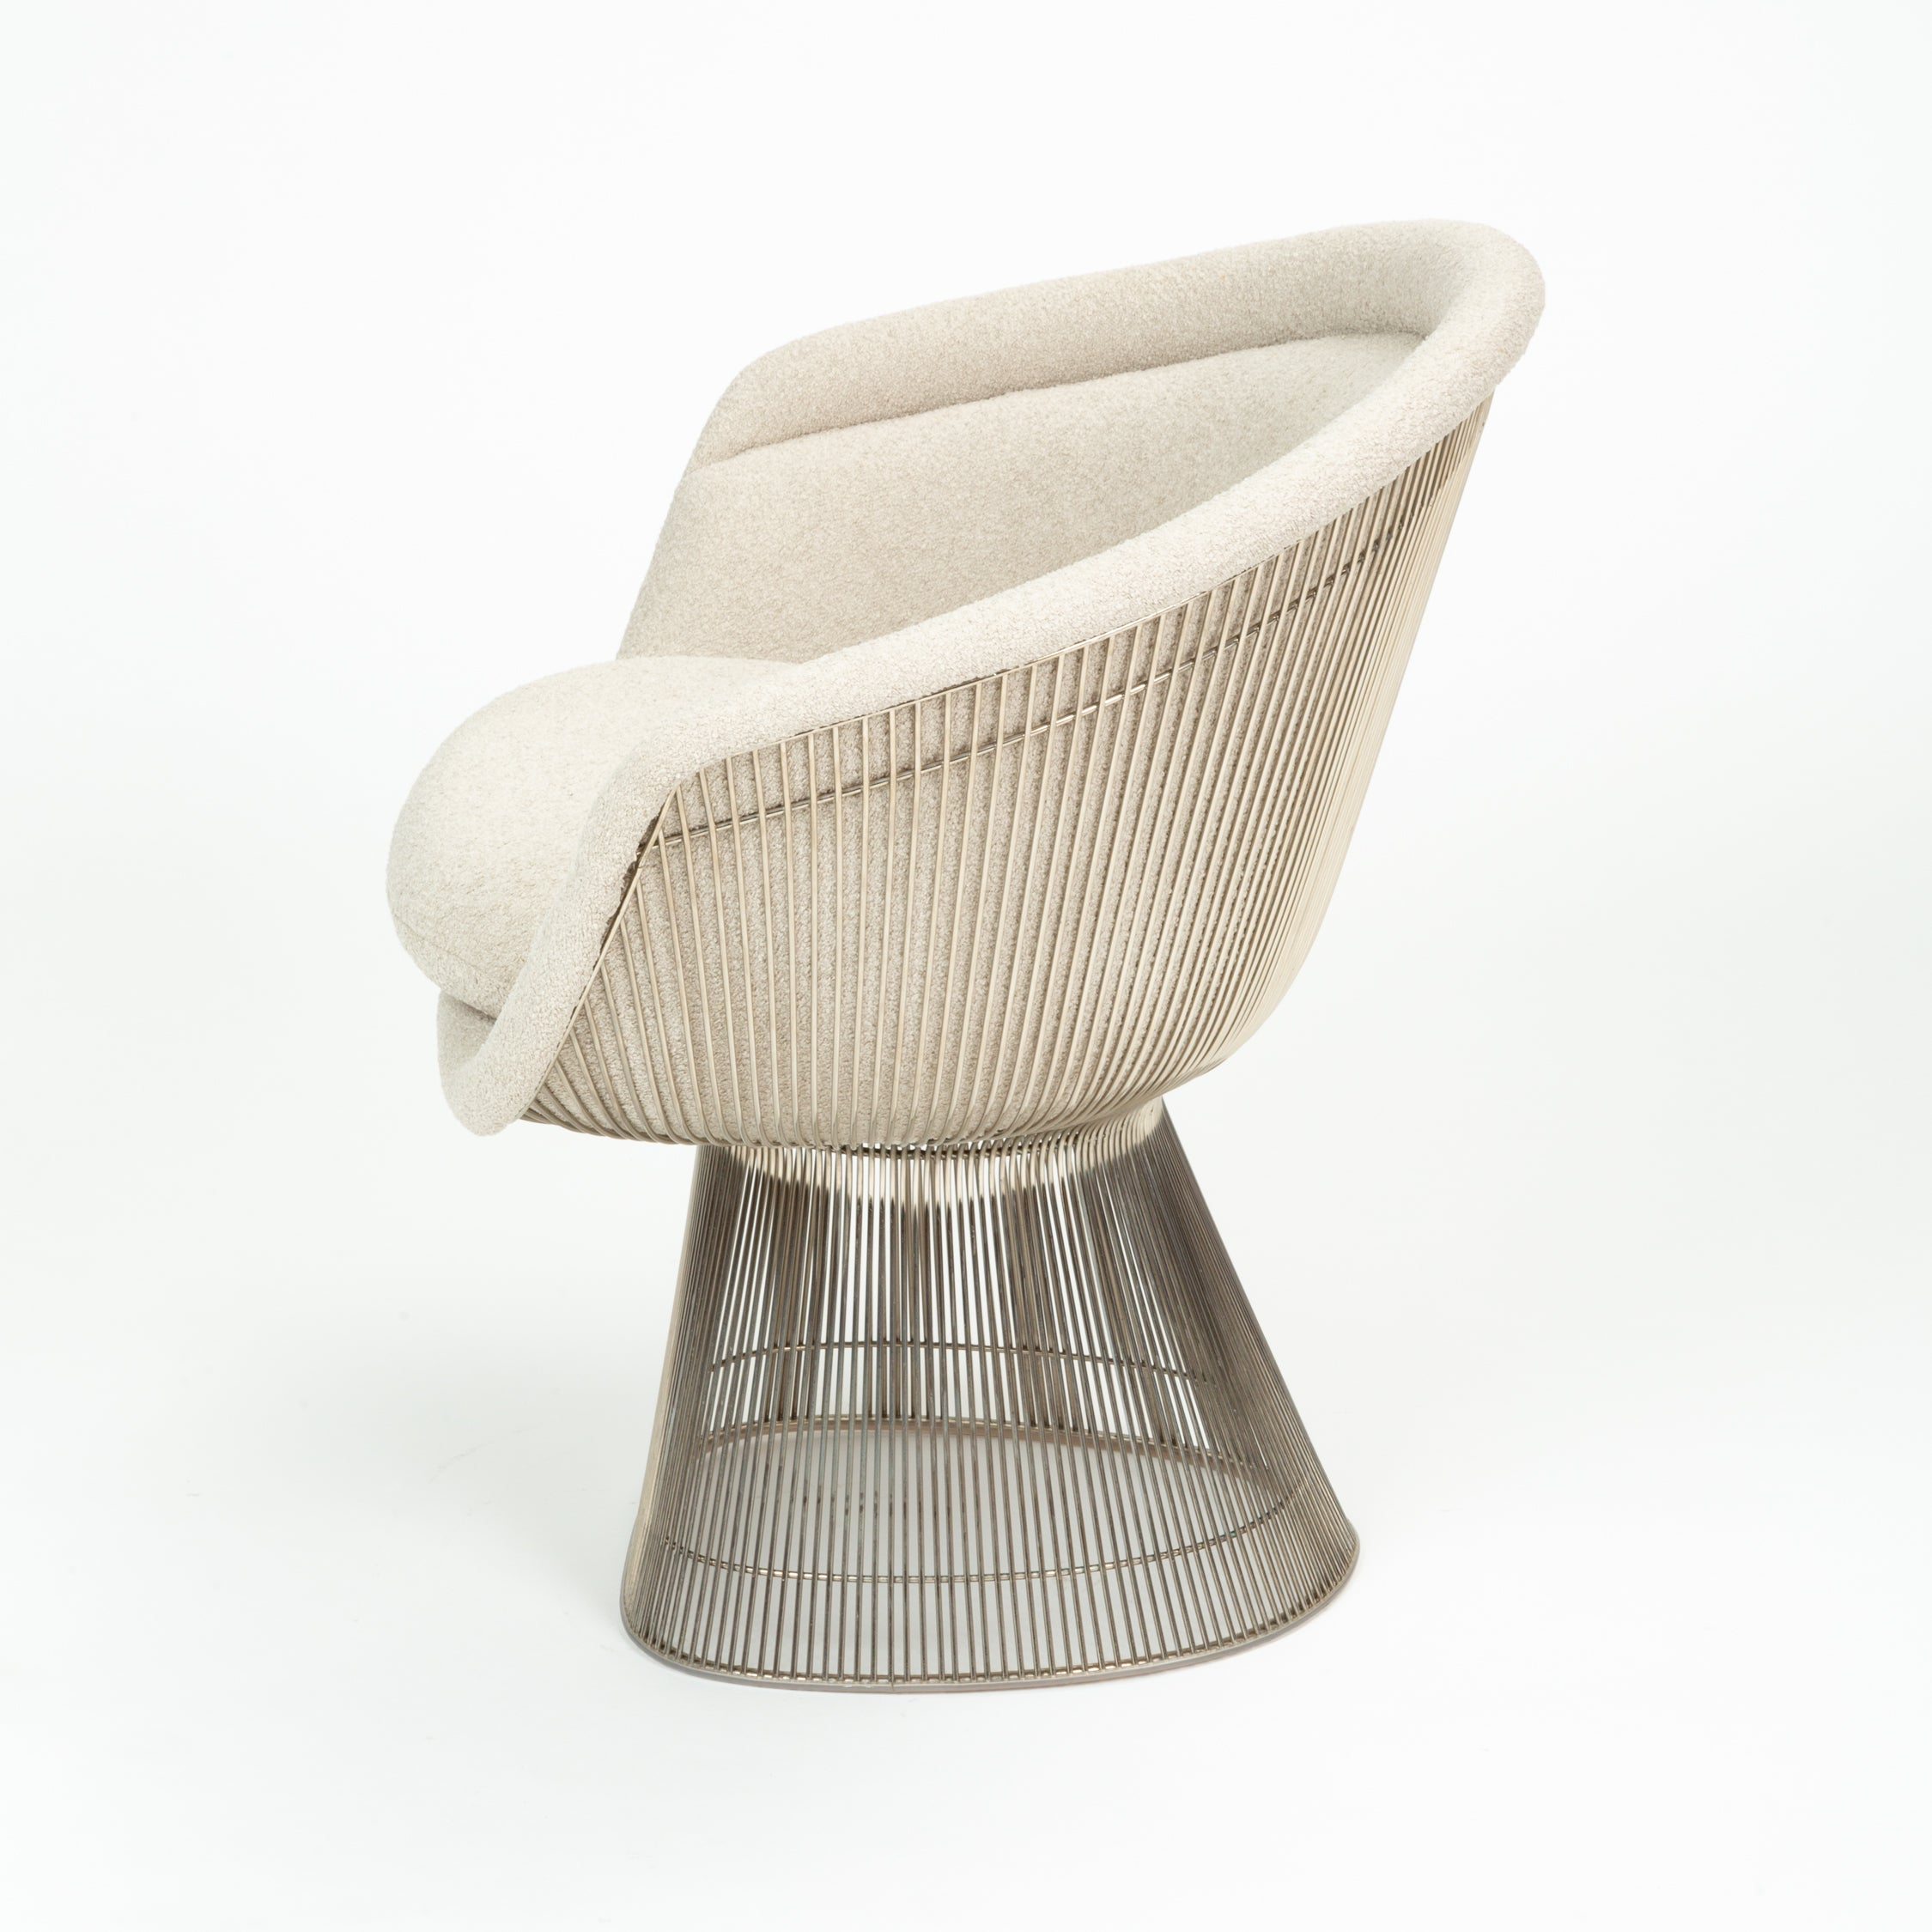 Sensational Platner Collection For Knoll Lounge Chair In White Boucle Gamerscity Chair Design For Home Gamerscityorg